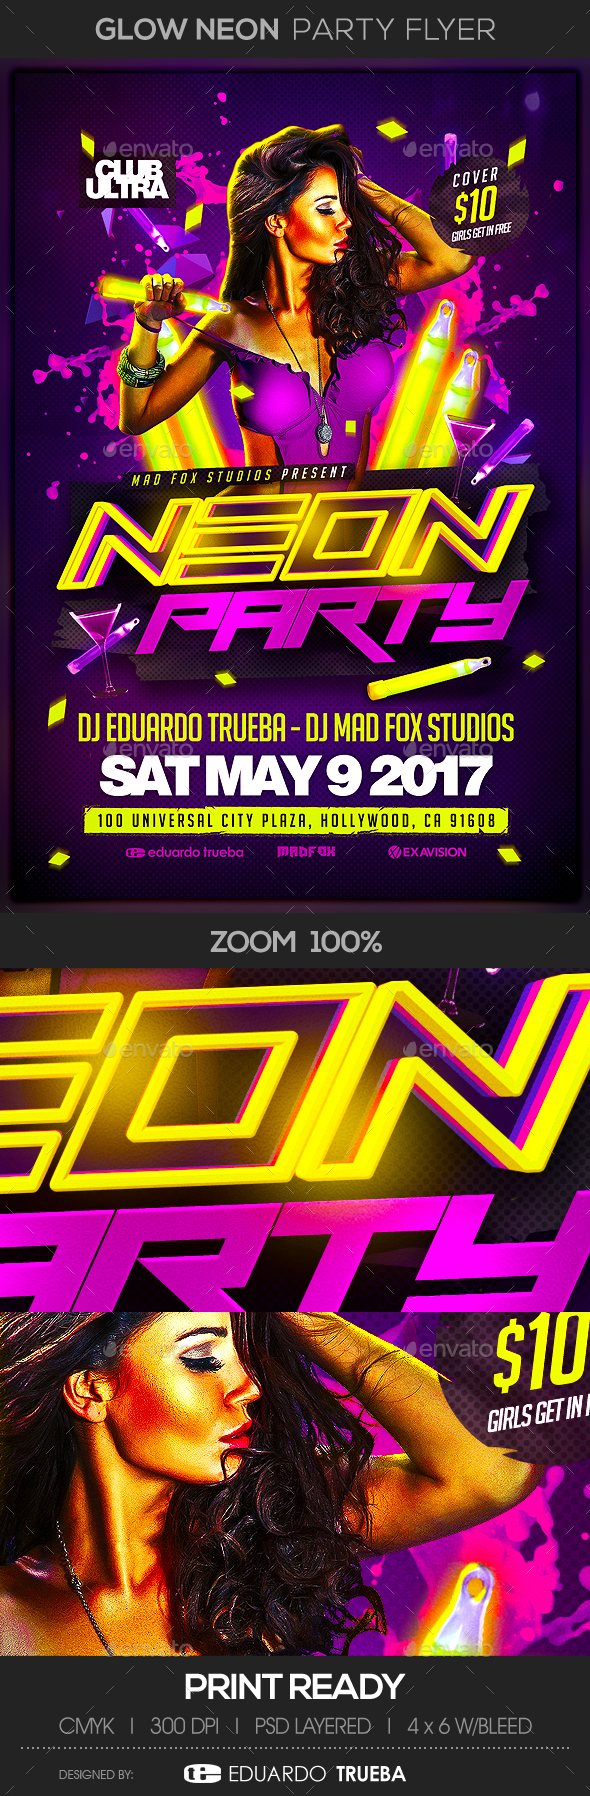 Glow Neon Party Flyer - Clubs & Parties Events